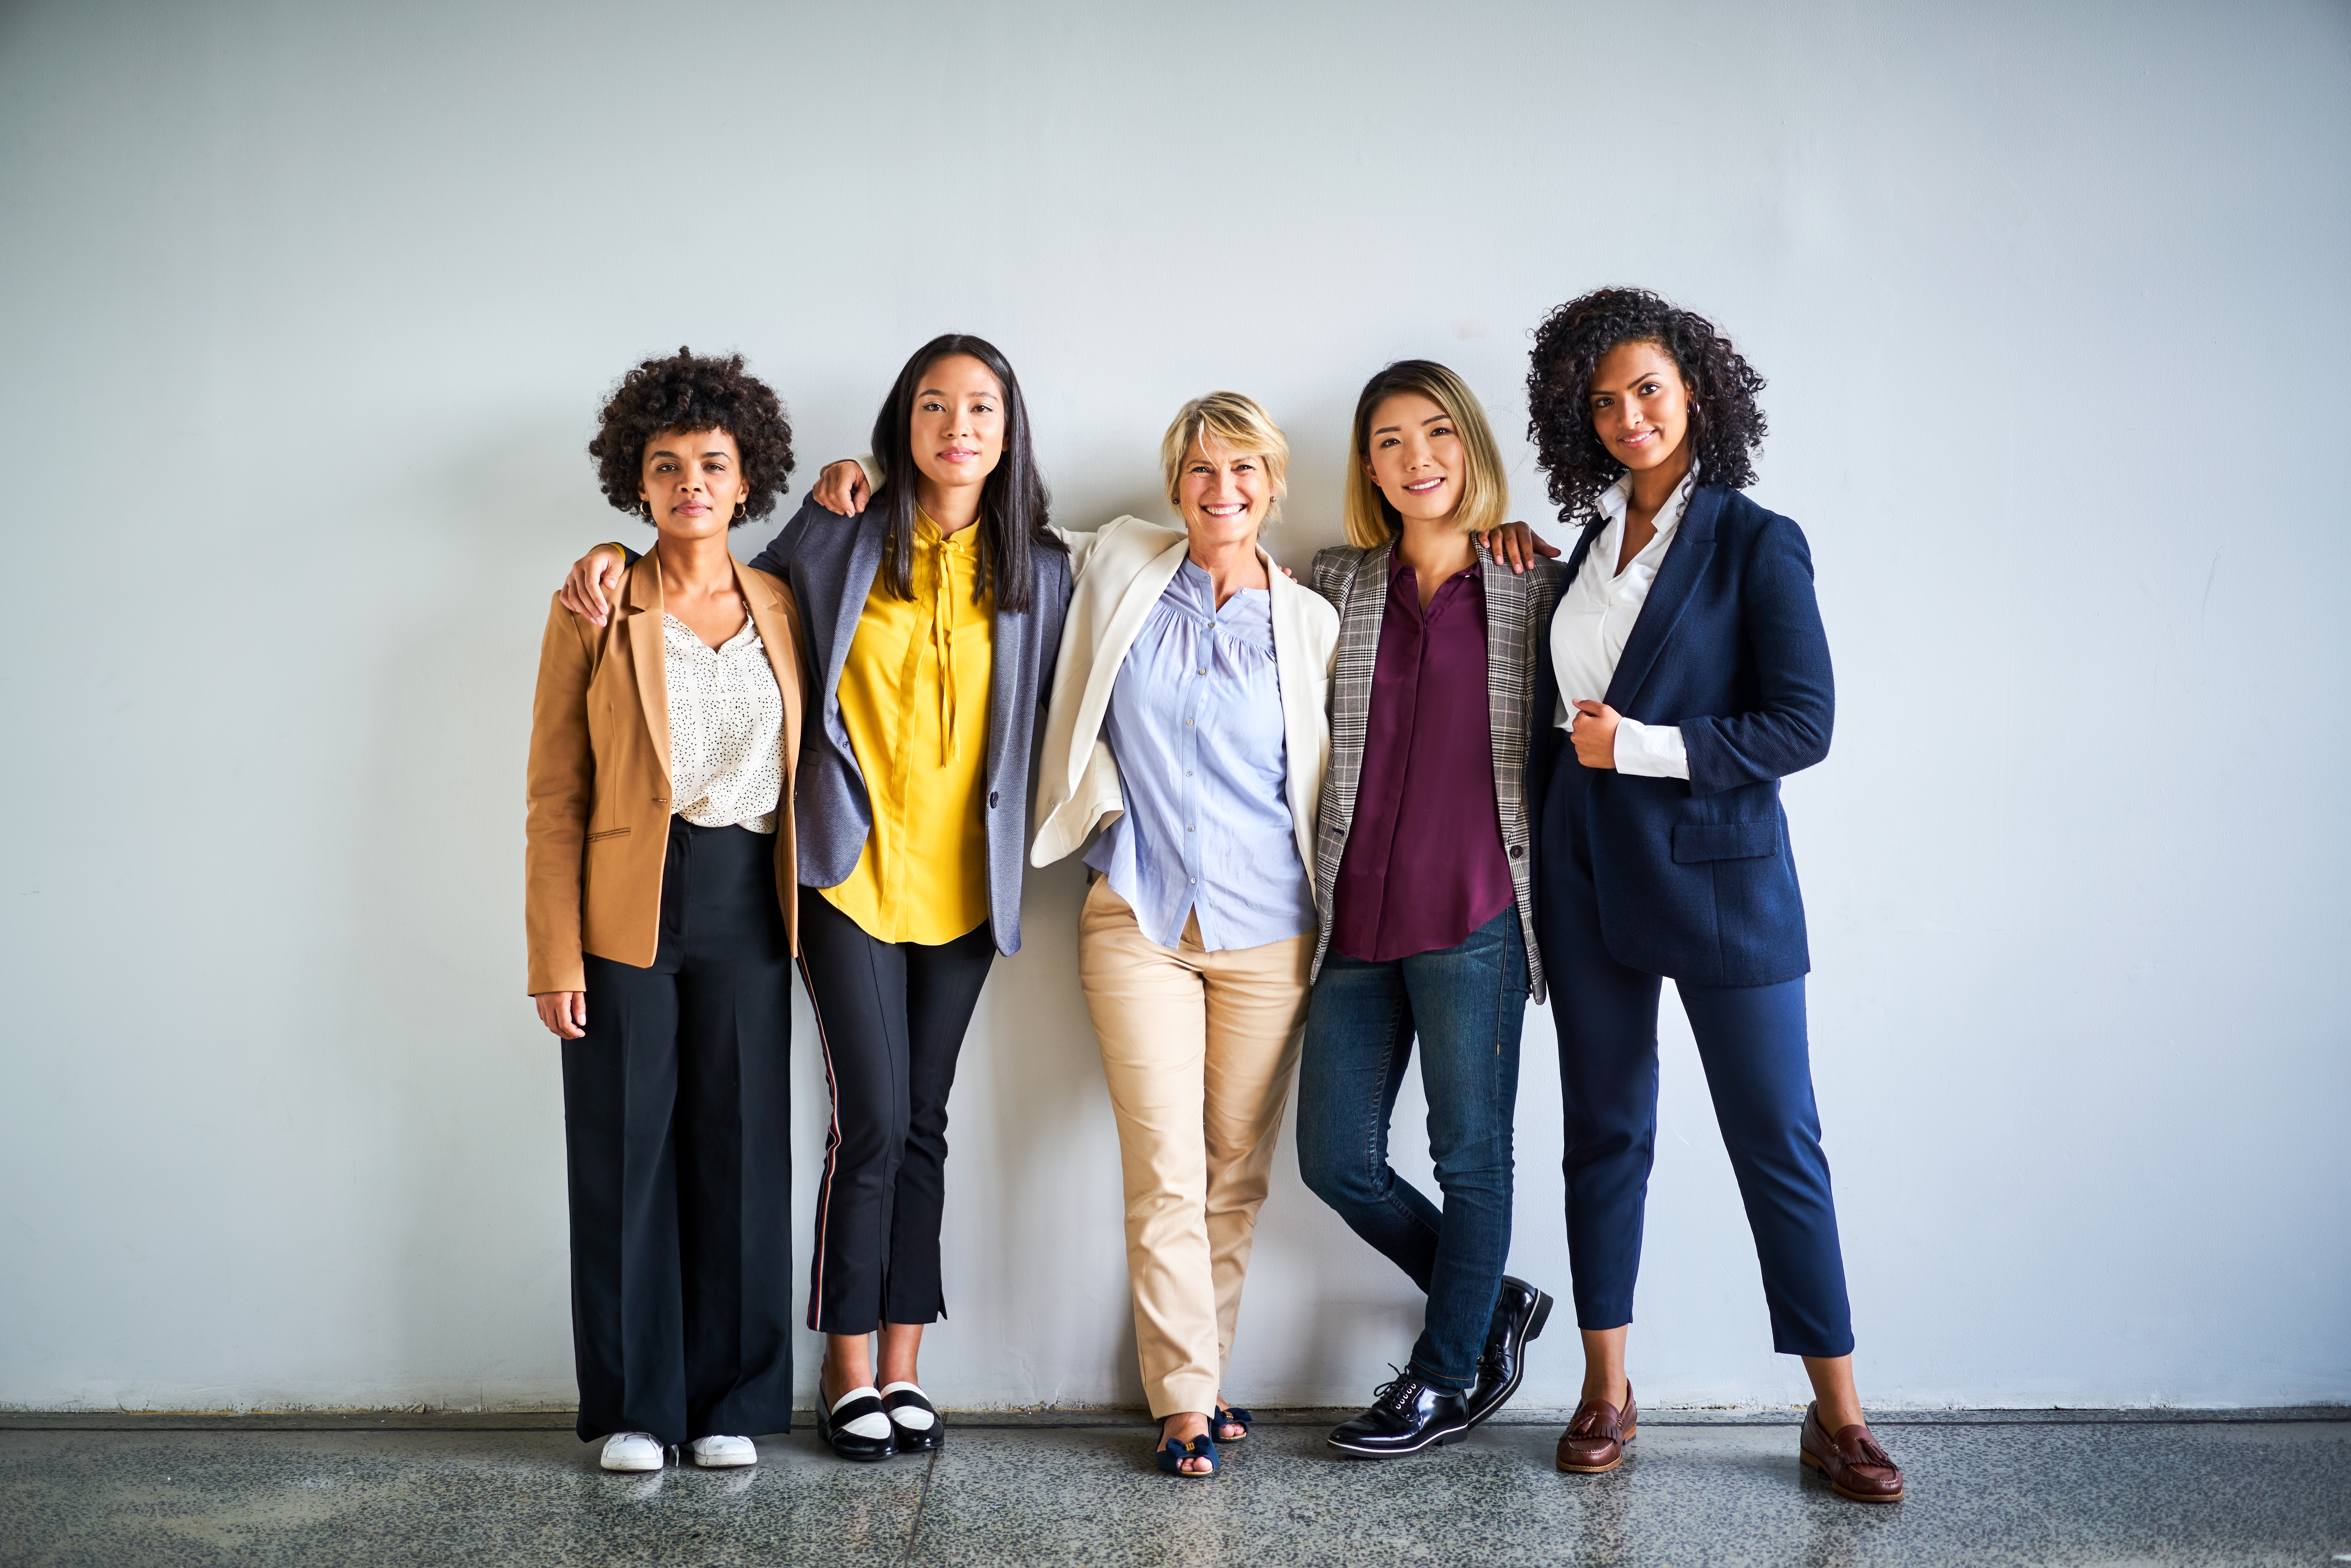 Ladies in Leadership: Recommended Reading List